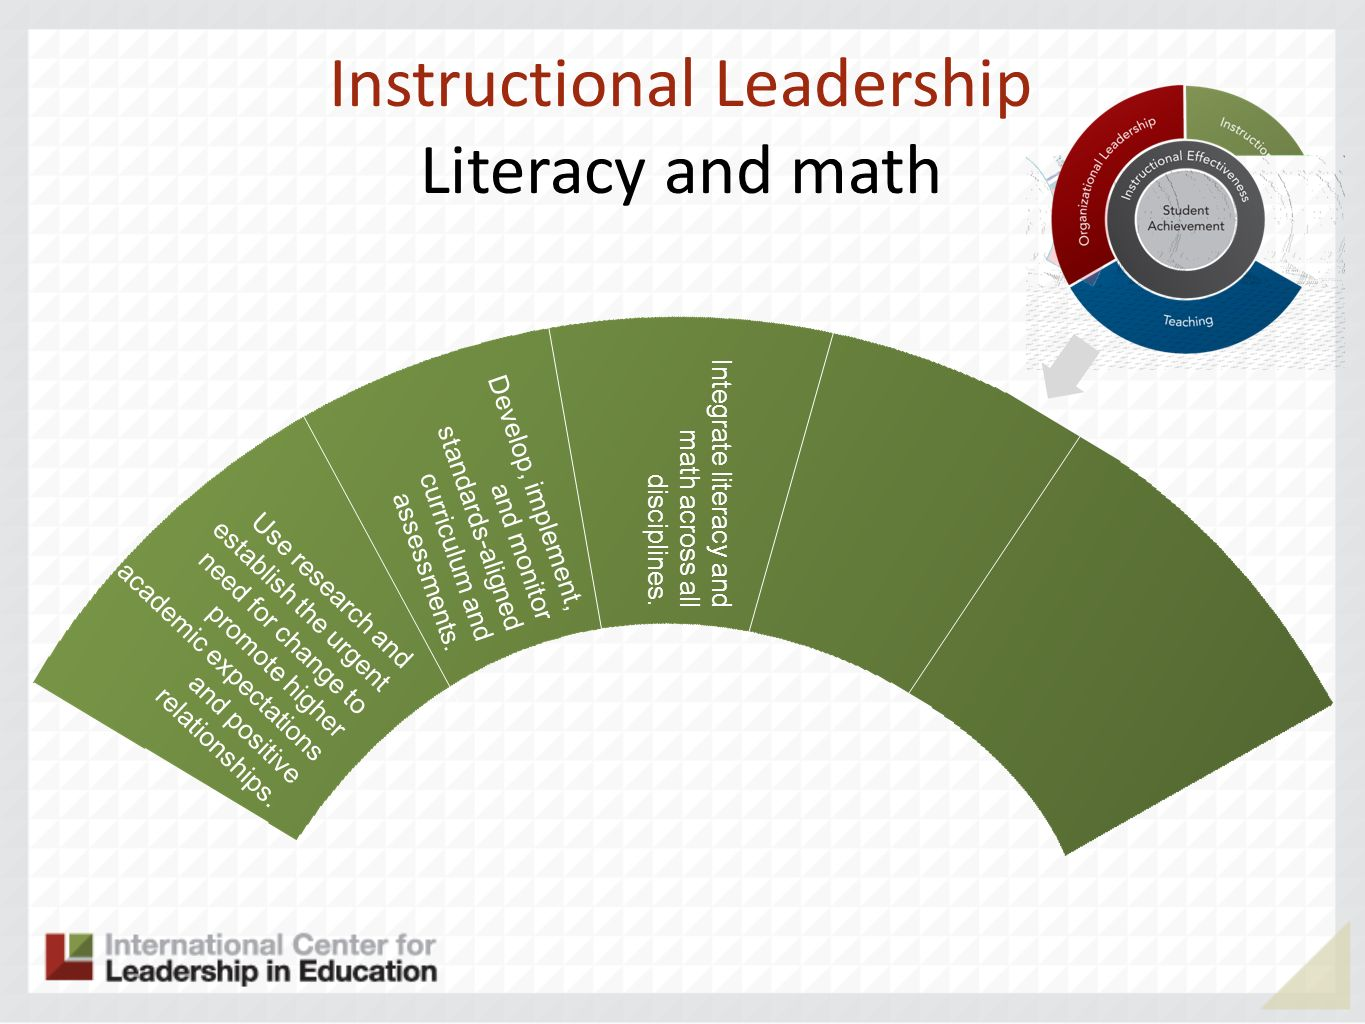 Instructional Leadership Literacy and math Use research and establish the urgent need for change to promote higher academic expectations and positive relationships.